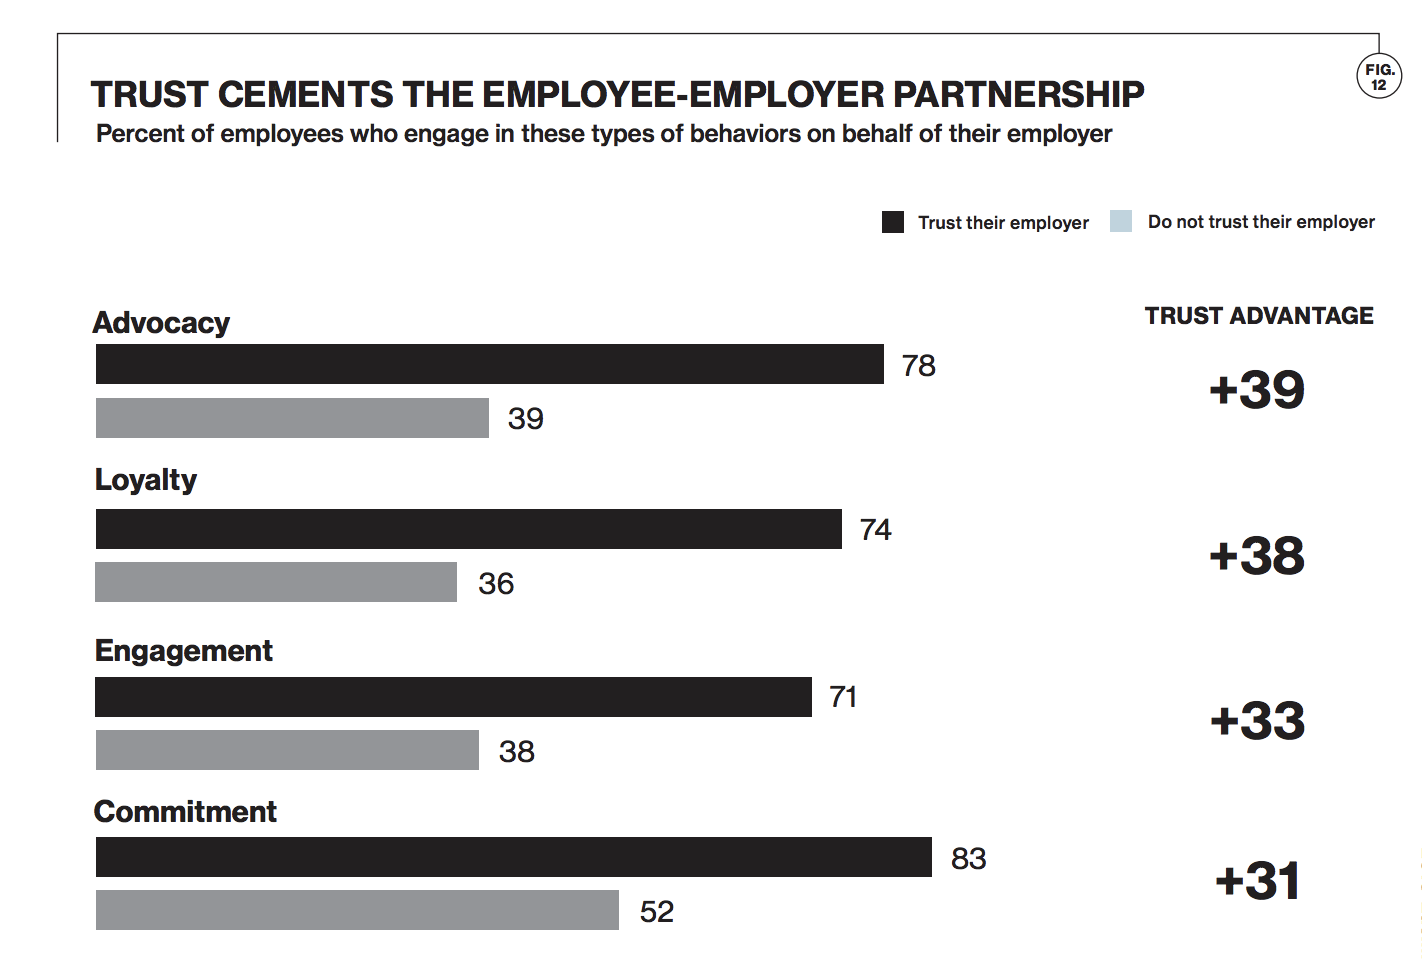 the benefits of trust in the employer